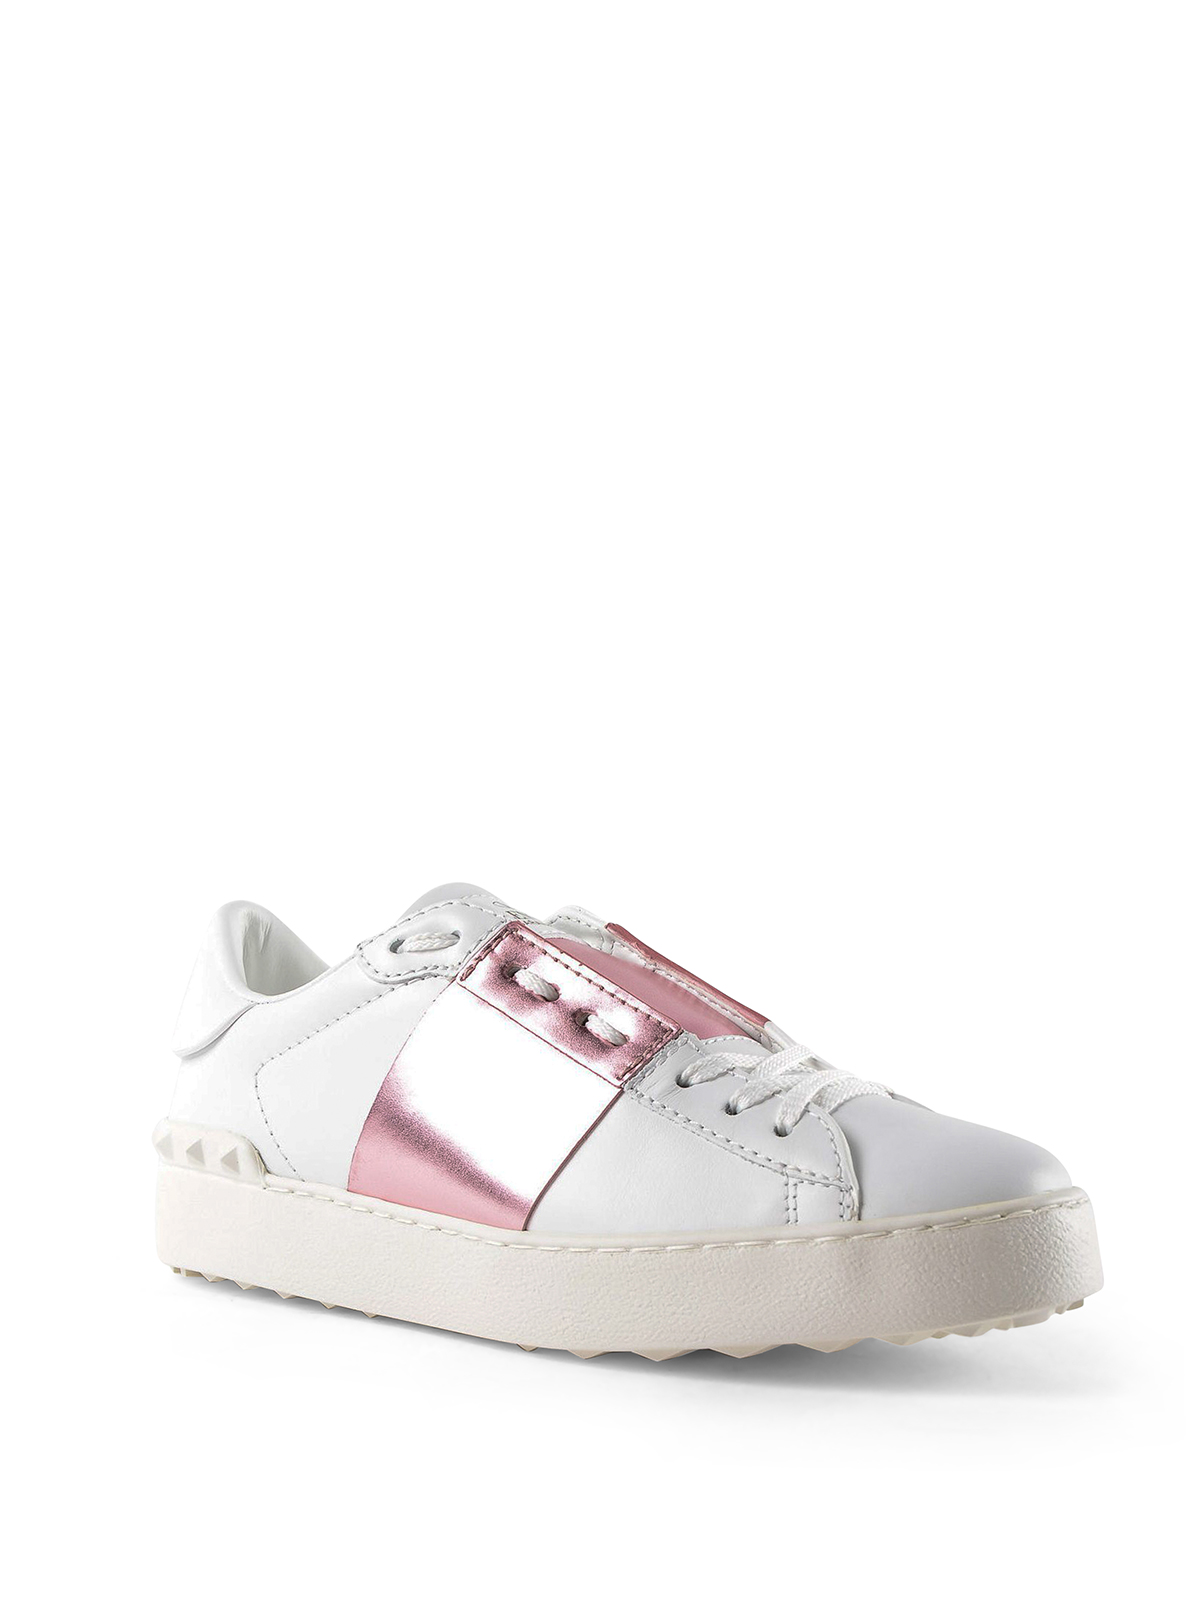 Open white sneakers with pink metallic